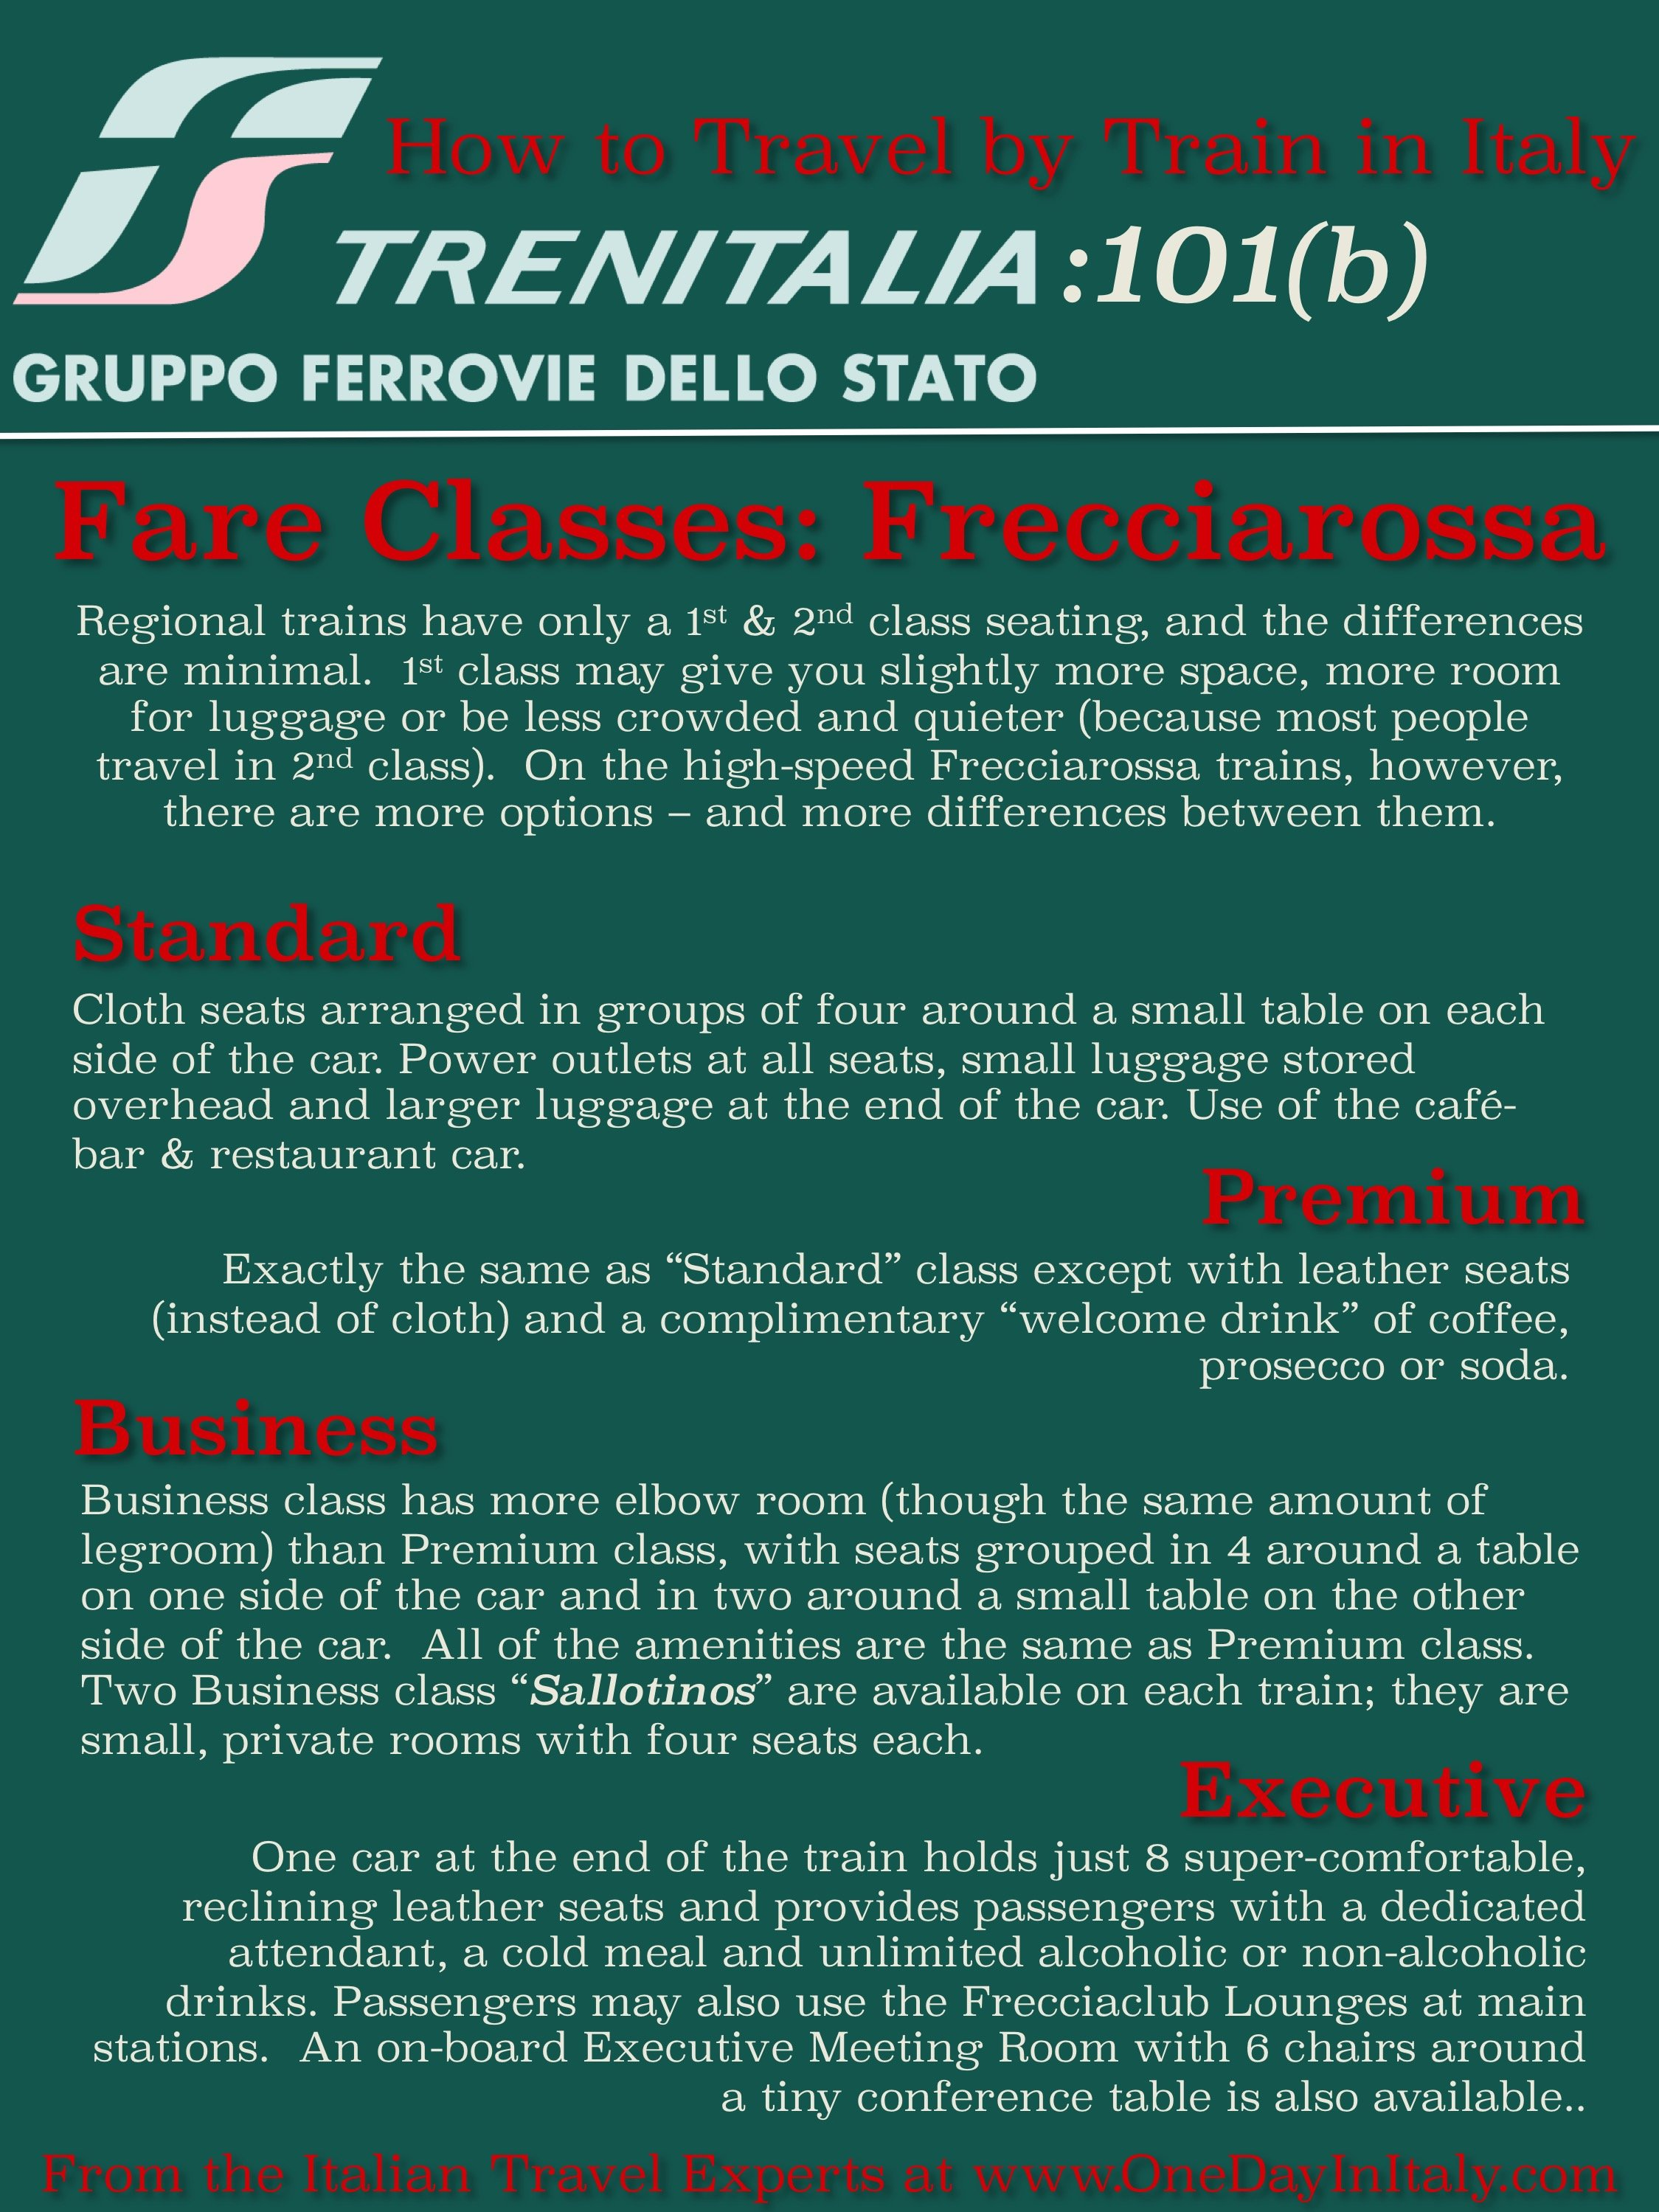 Trenitalia Fare Classes